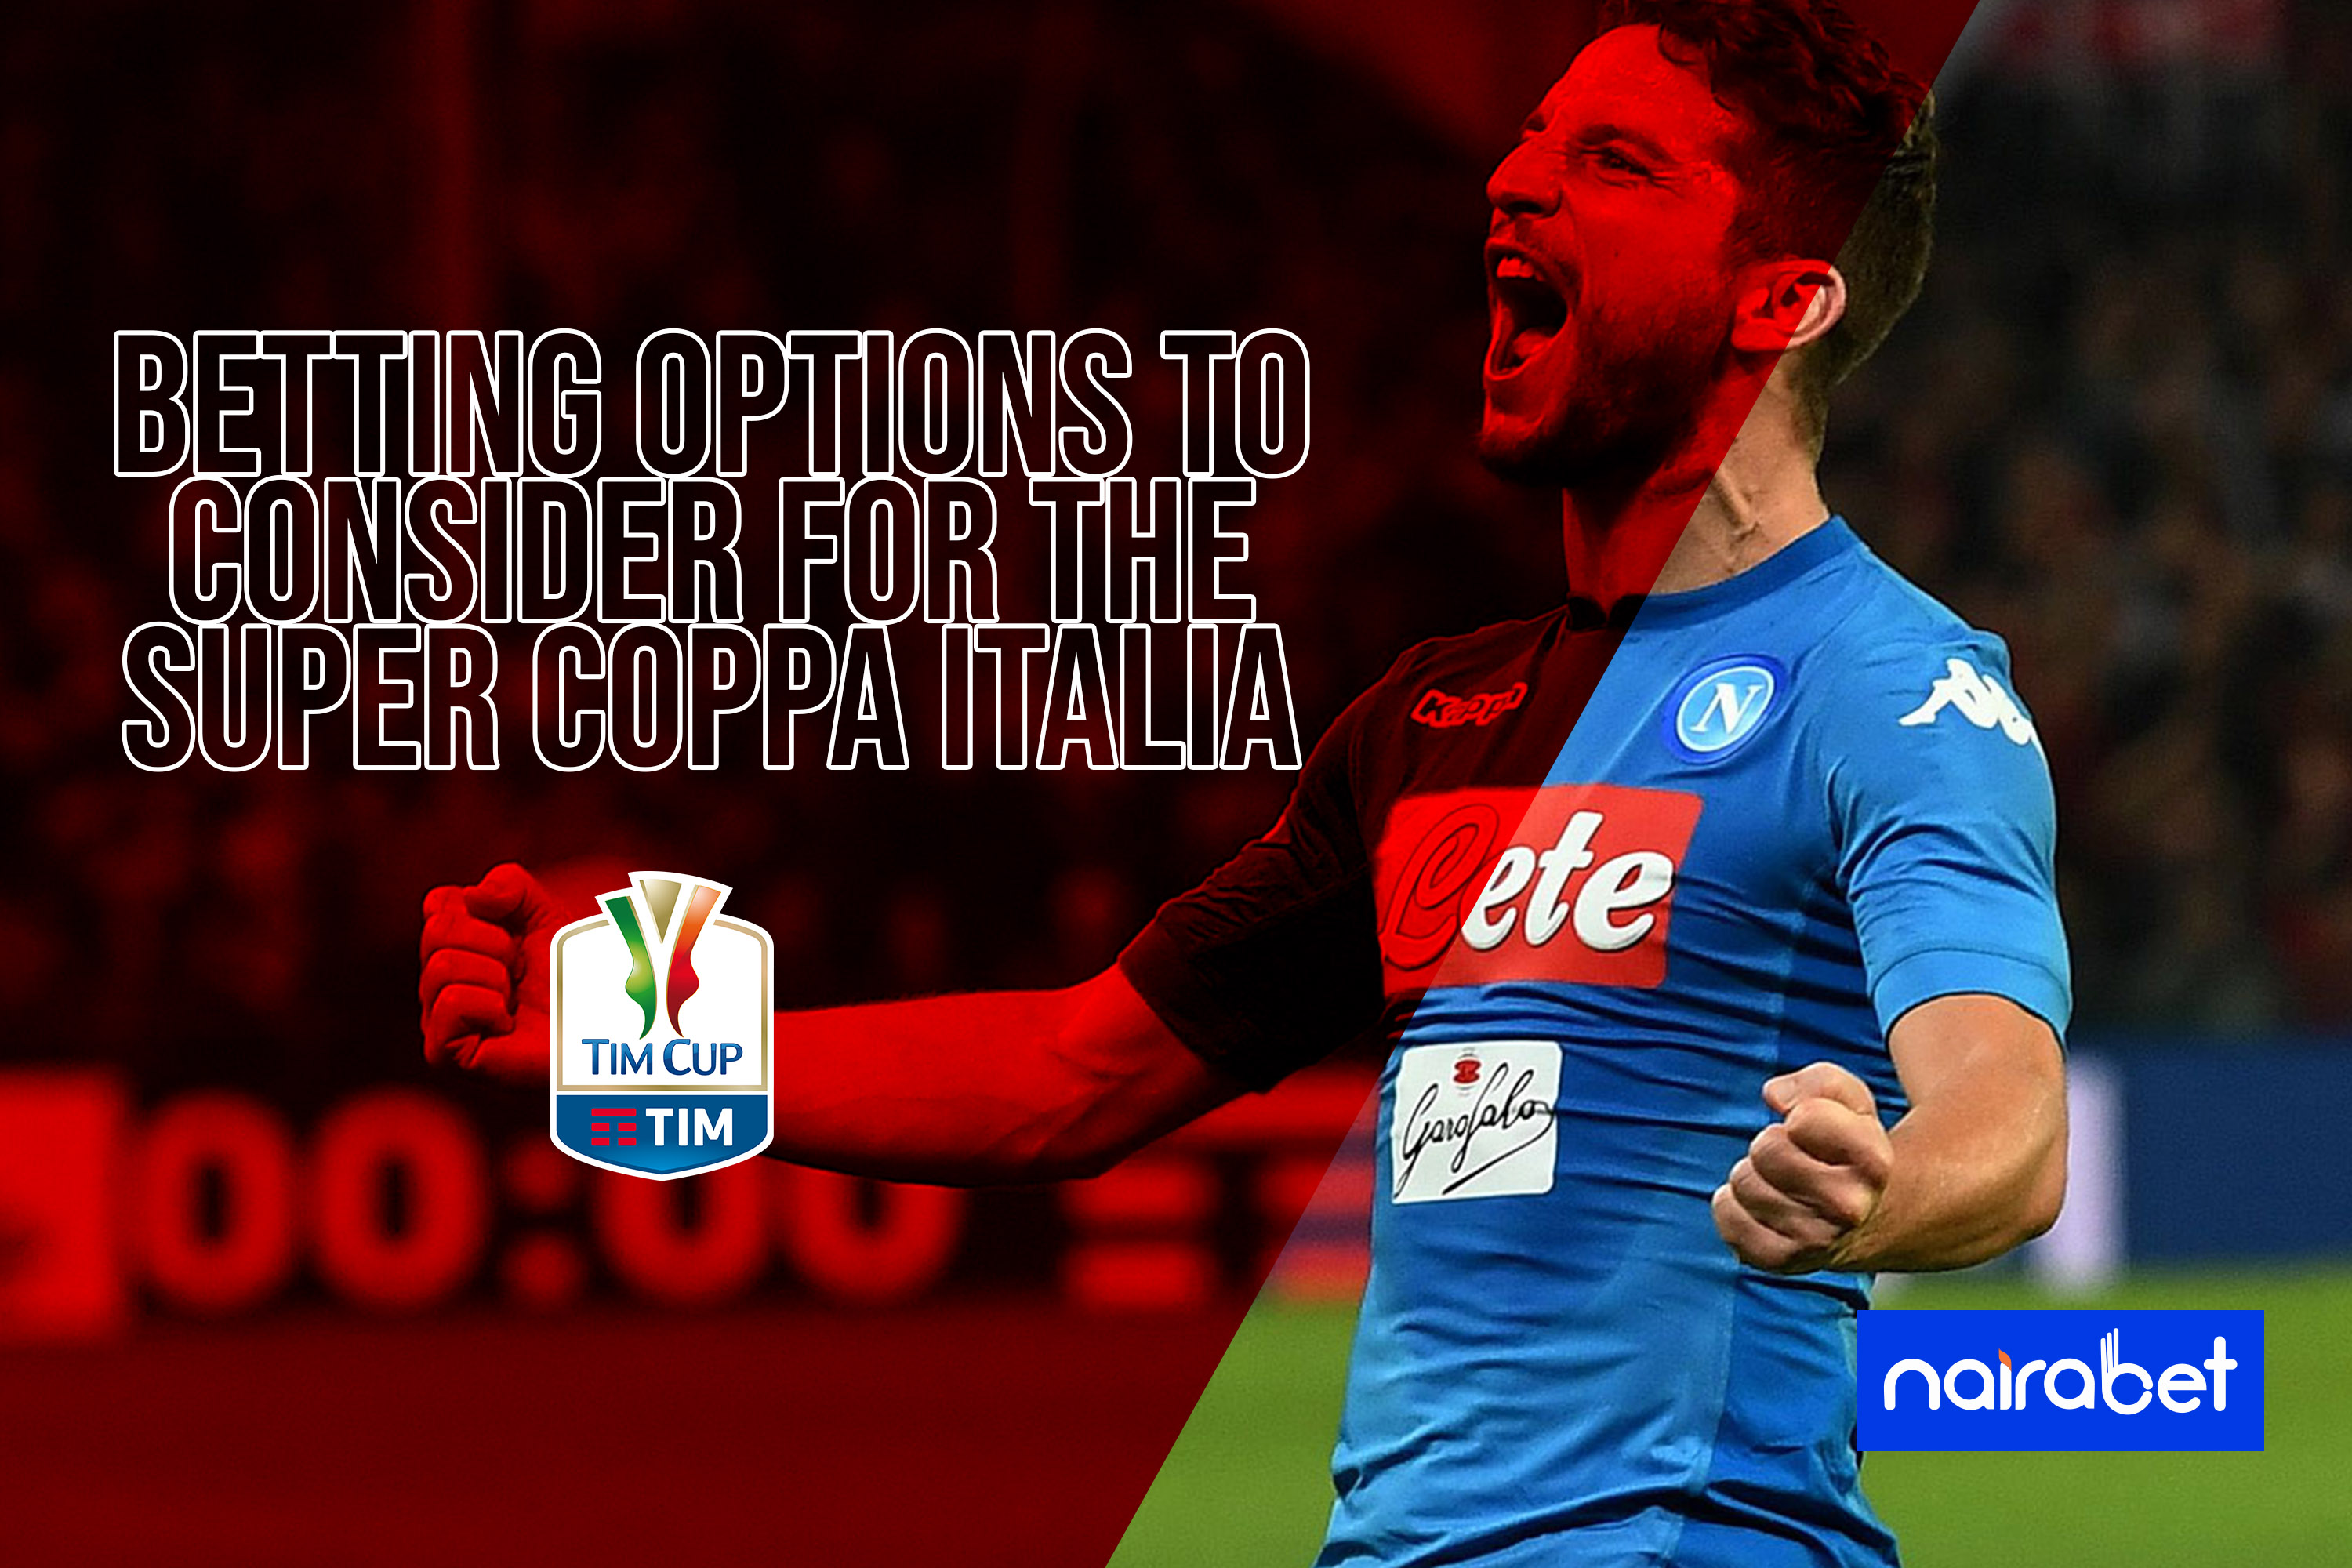 4 Betting Options to Consider for the Super Coppa Italia